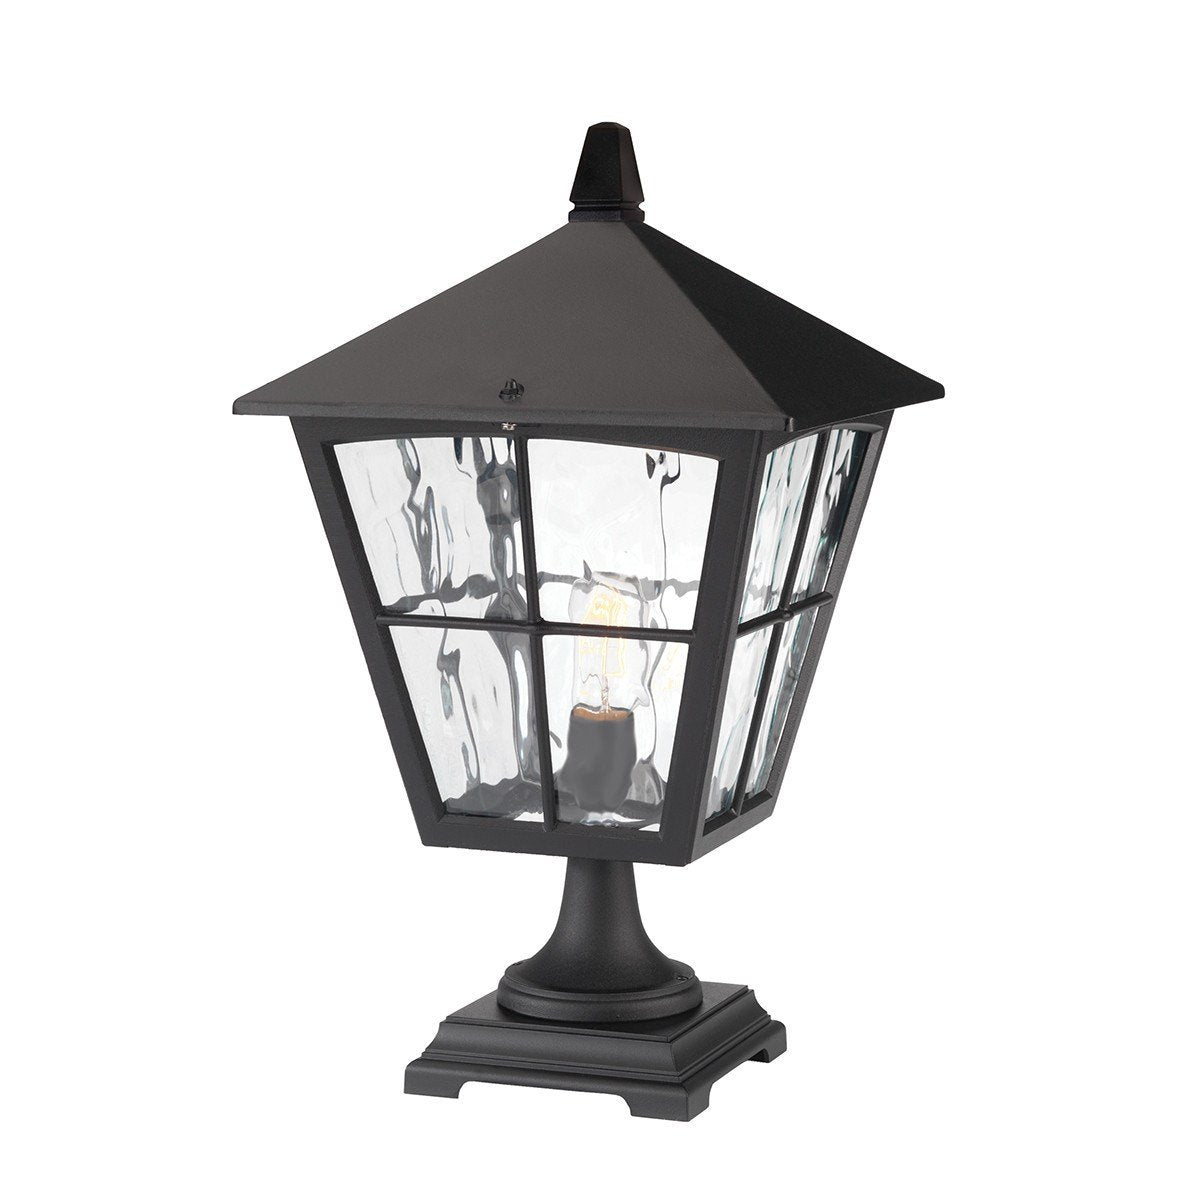 Edinburgh Pedestal Lantern Black - London Lighting - 1